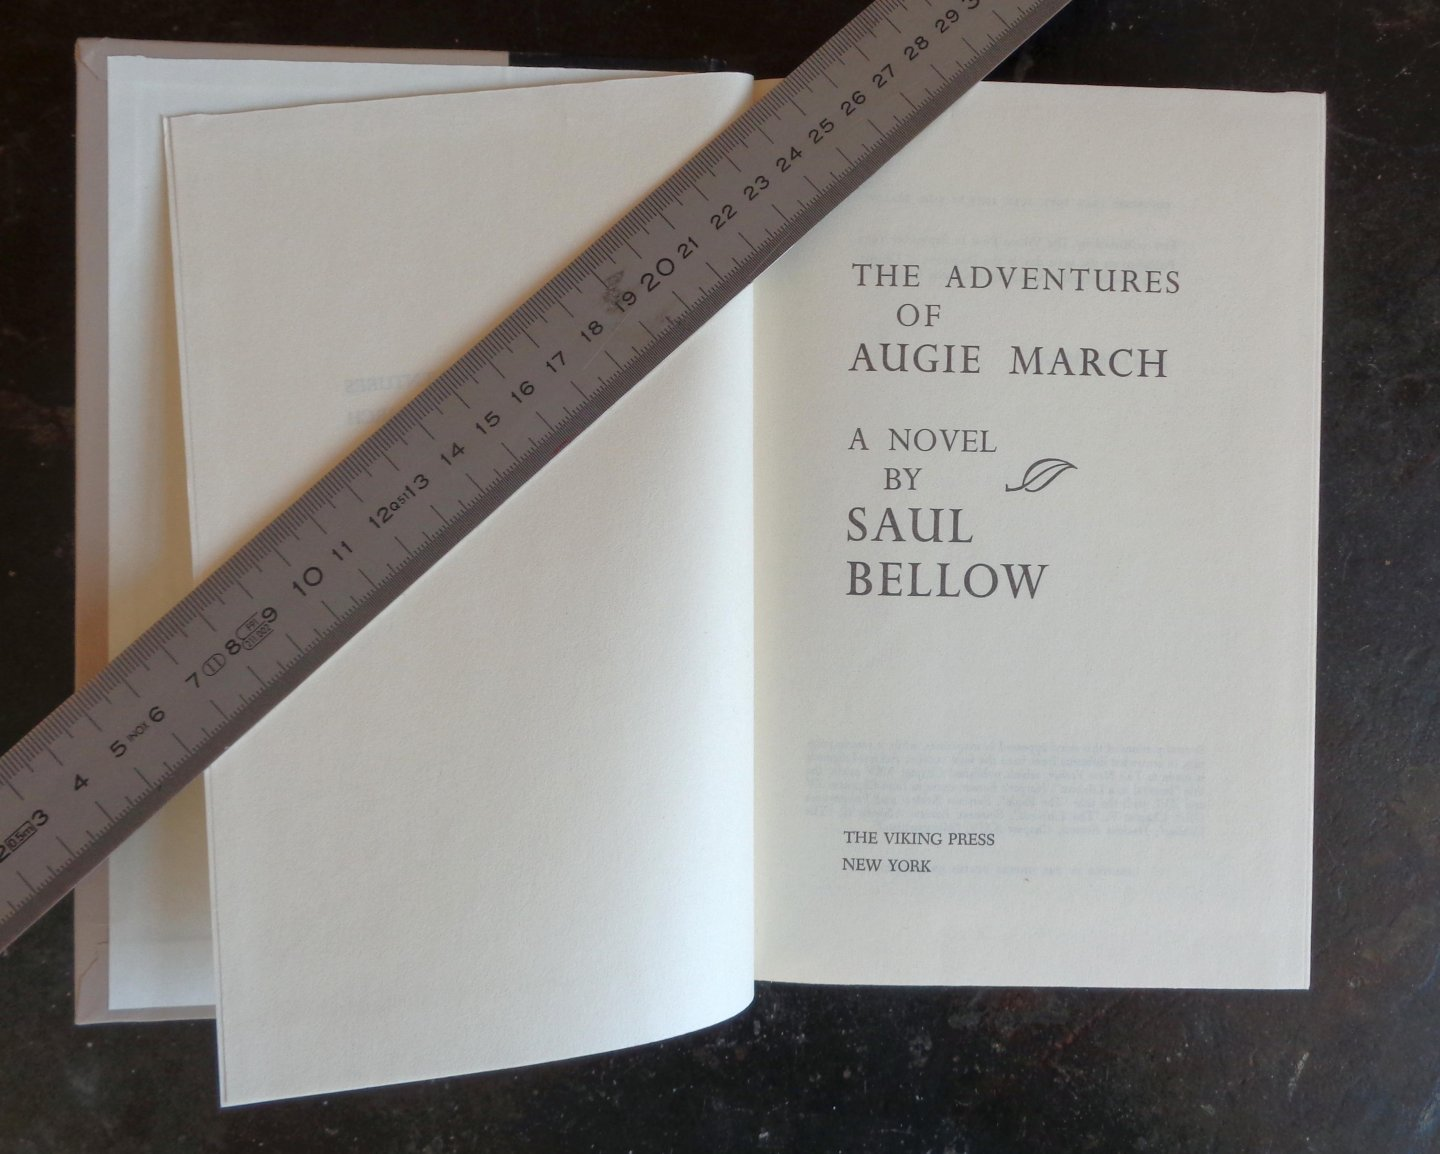 bellow, saul - The Adventures of Augie March